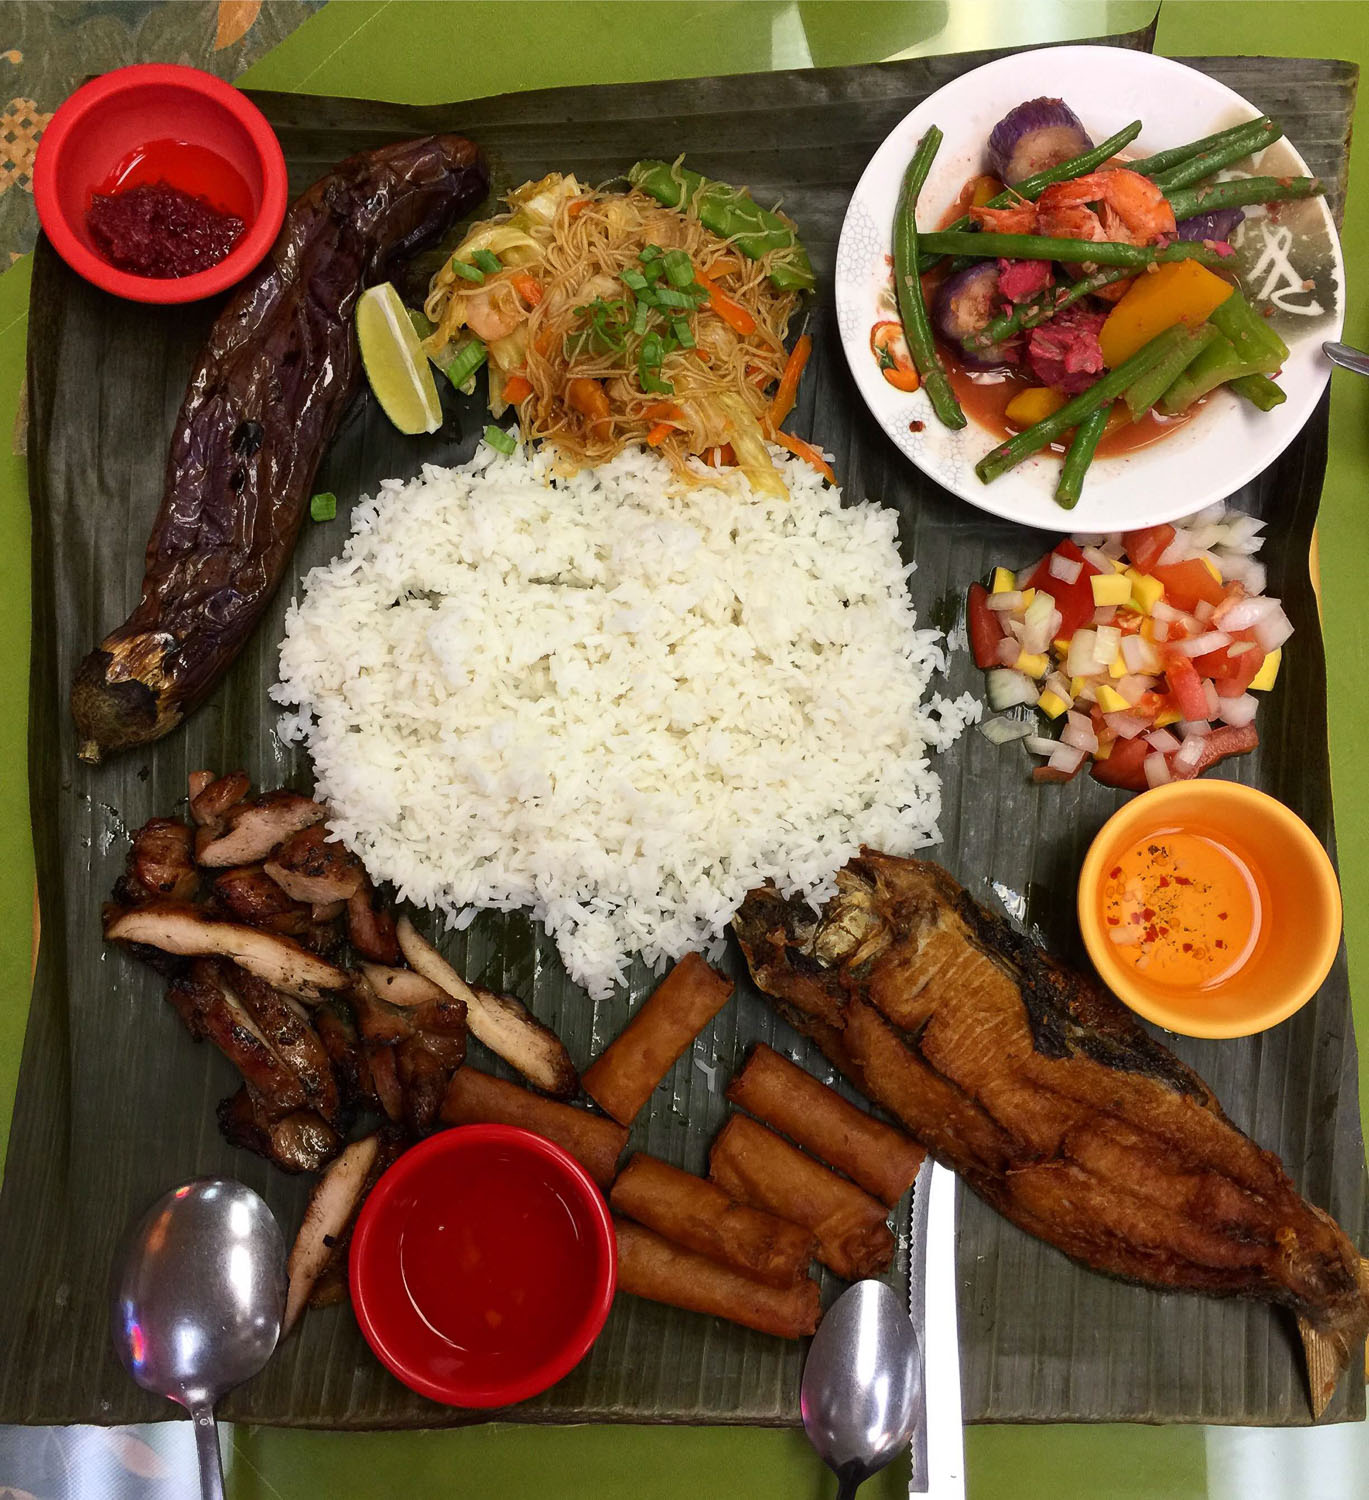 Ihawan's banana leaf feast for two. Pork BBQ, milkfish, grilled eggplant, shanghai noodles, spring rolls and more. Grab a handful and shove it in your face!